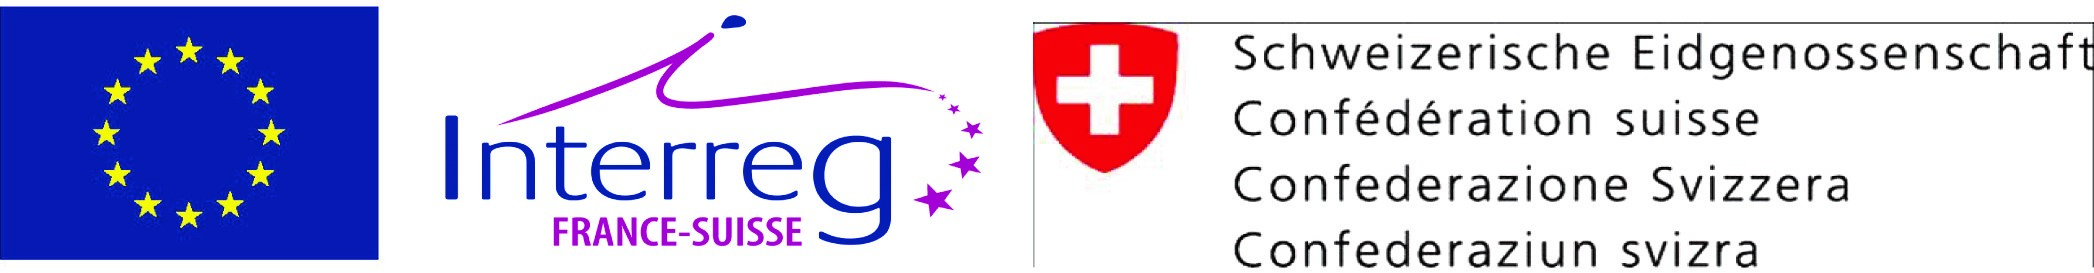 Interreg IVA France-Suisse - 2007-2013